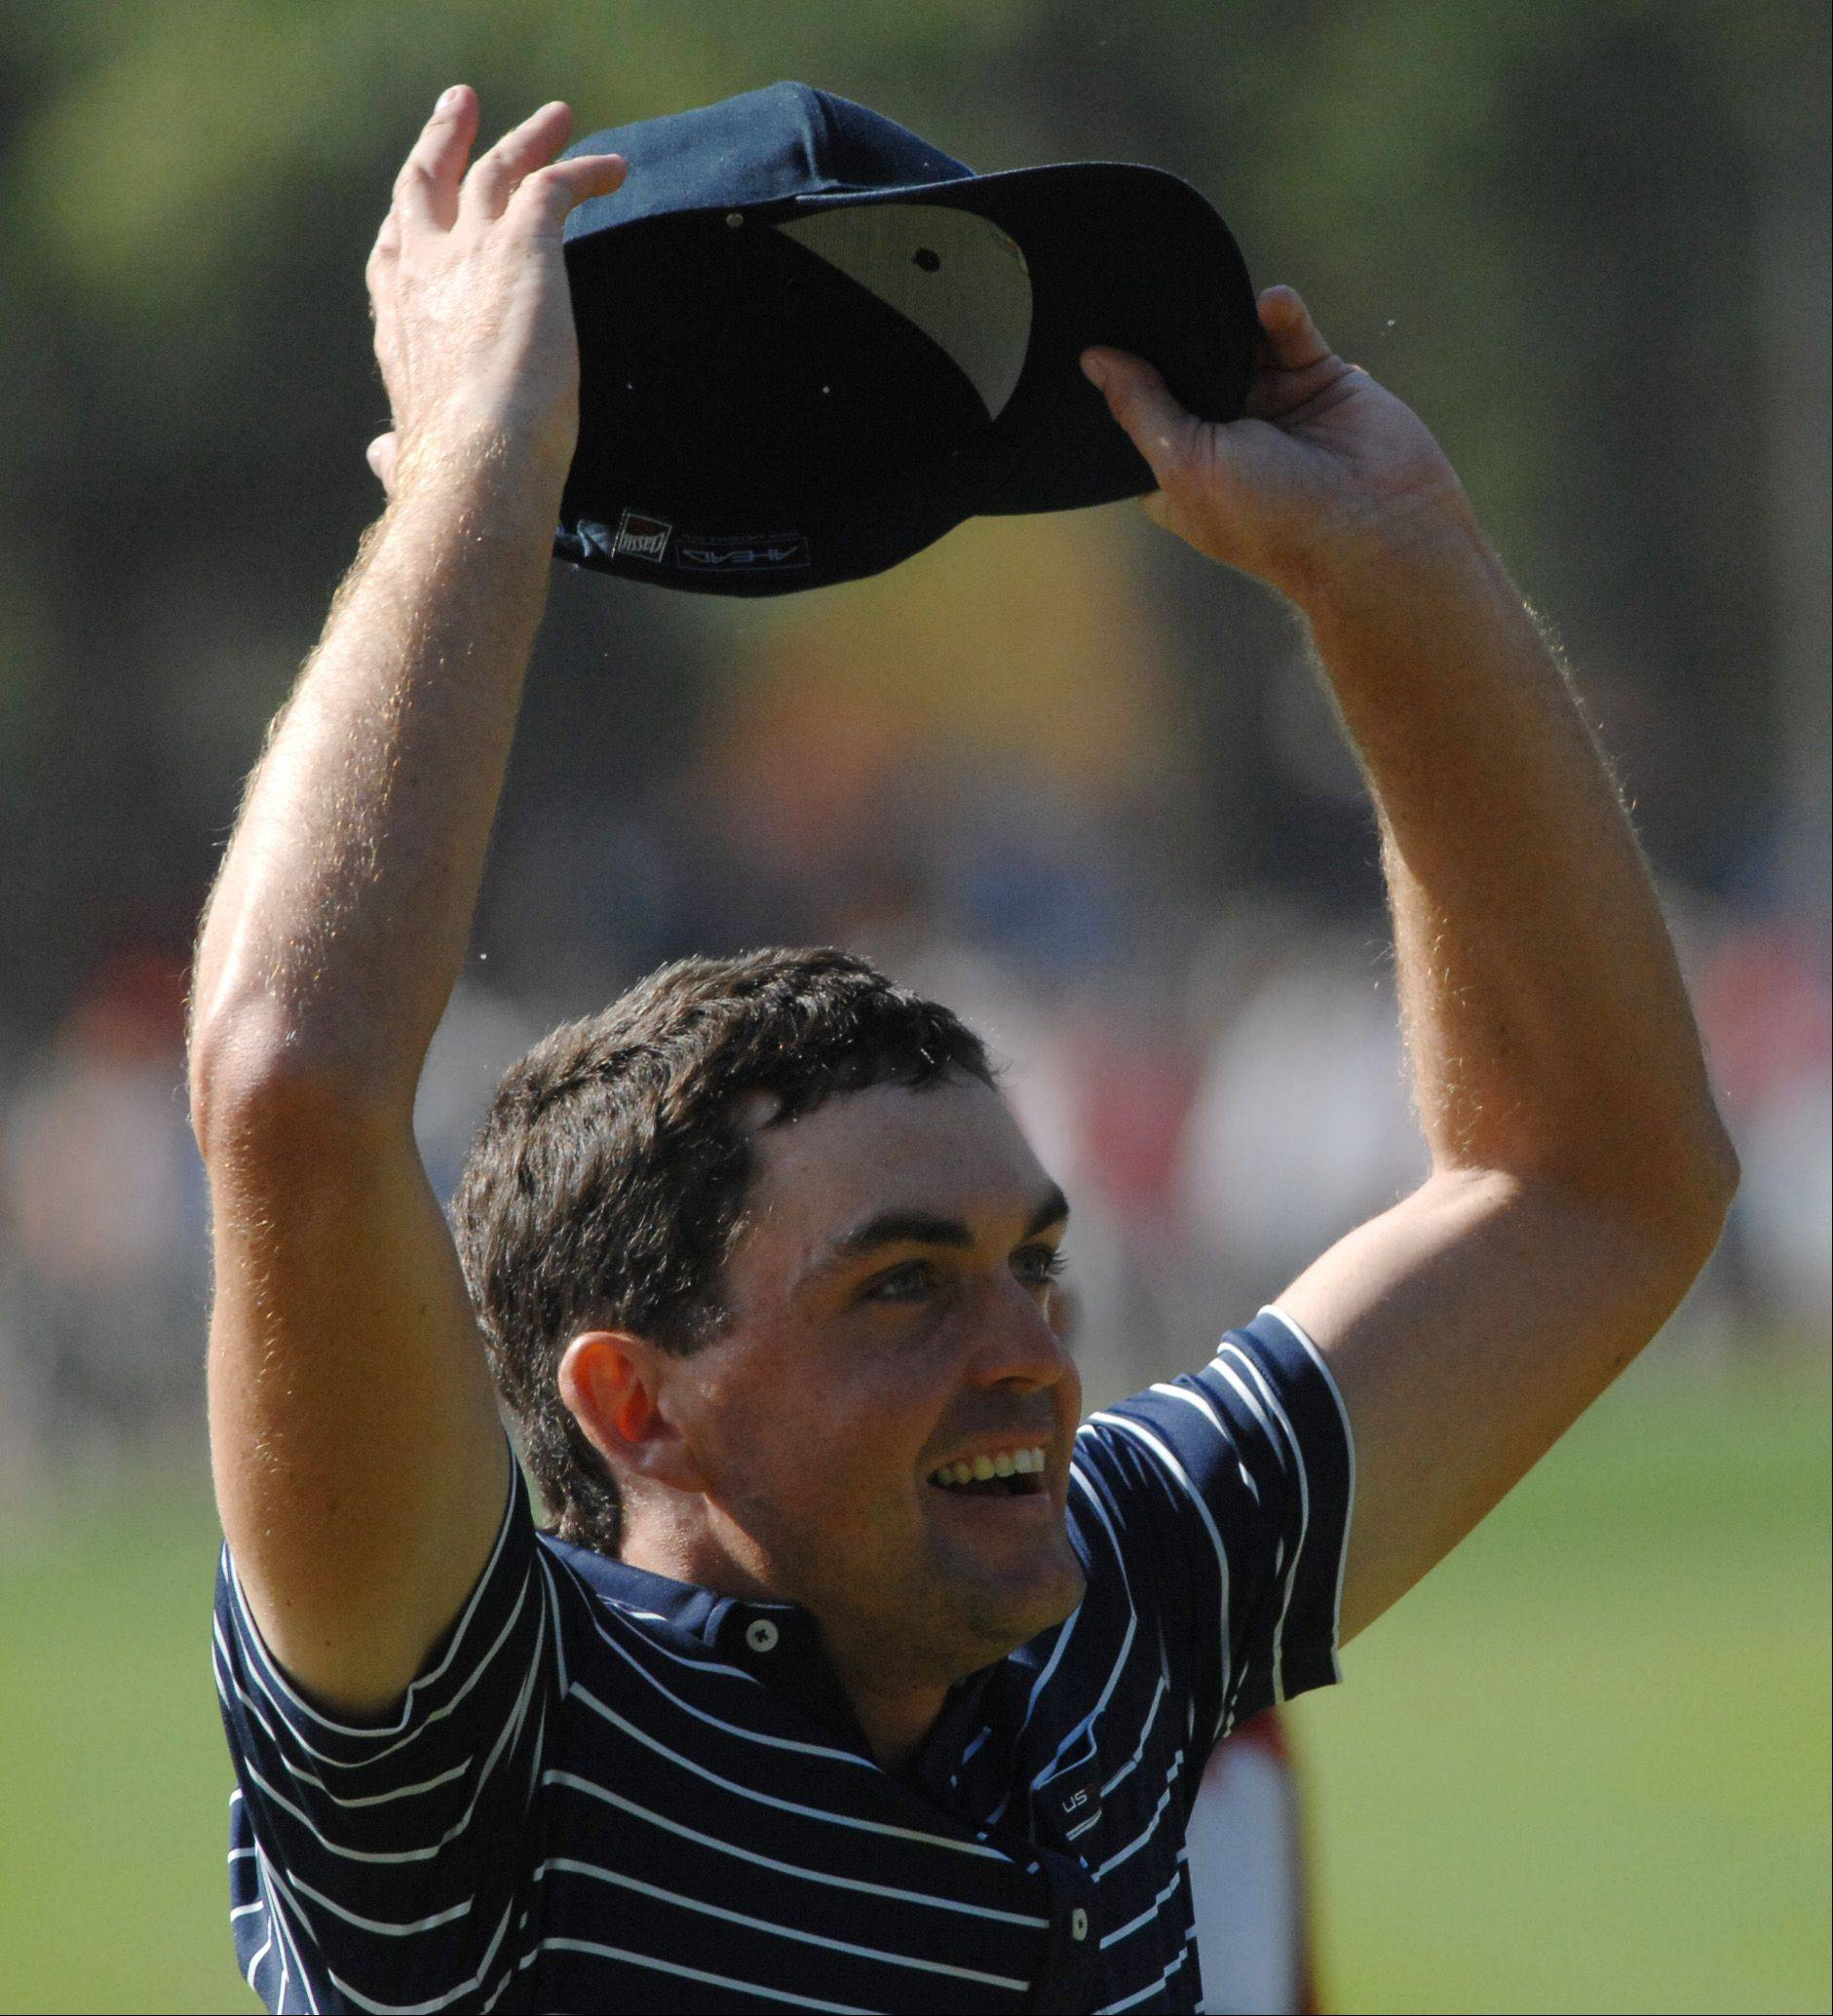 Keegan Bradley celebrates his team's win Saturday during the foursome matches at Medinah.